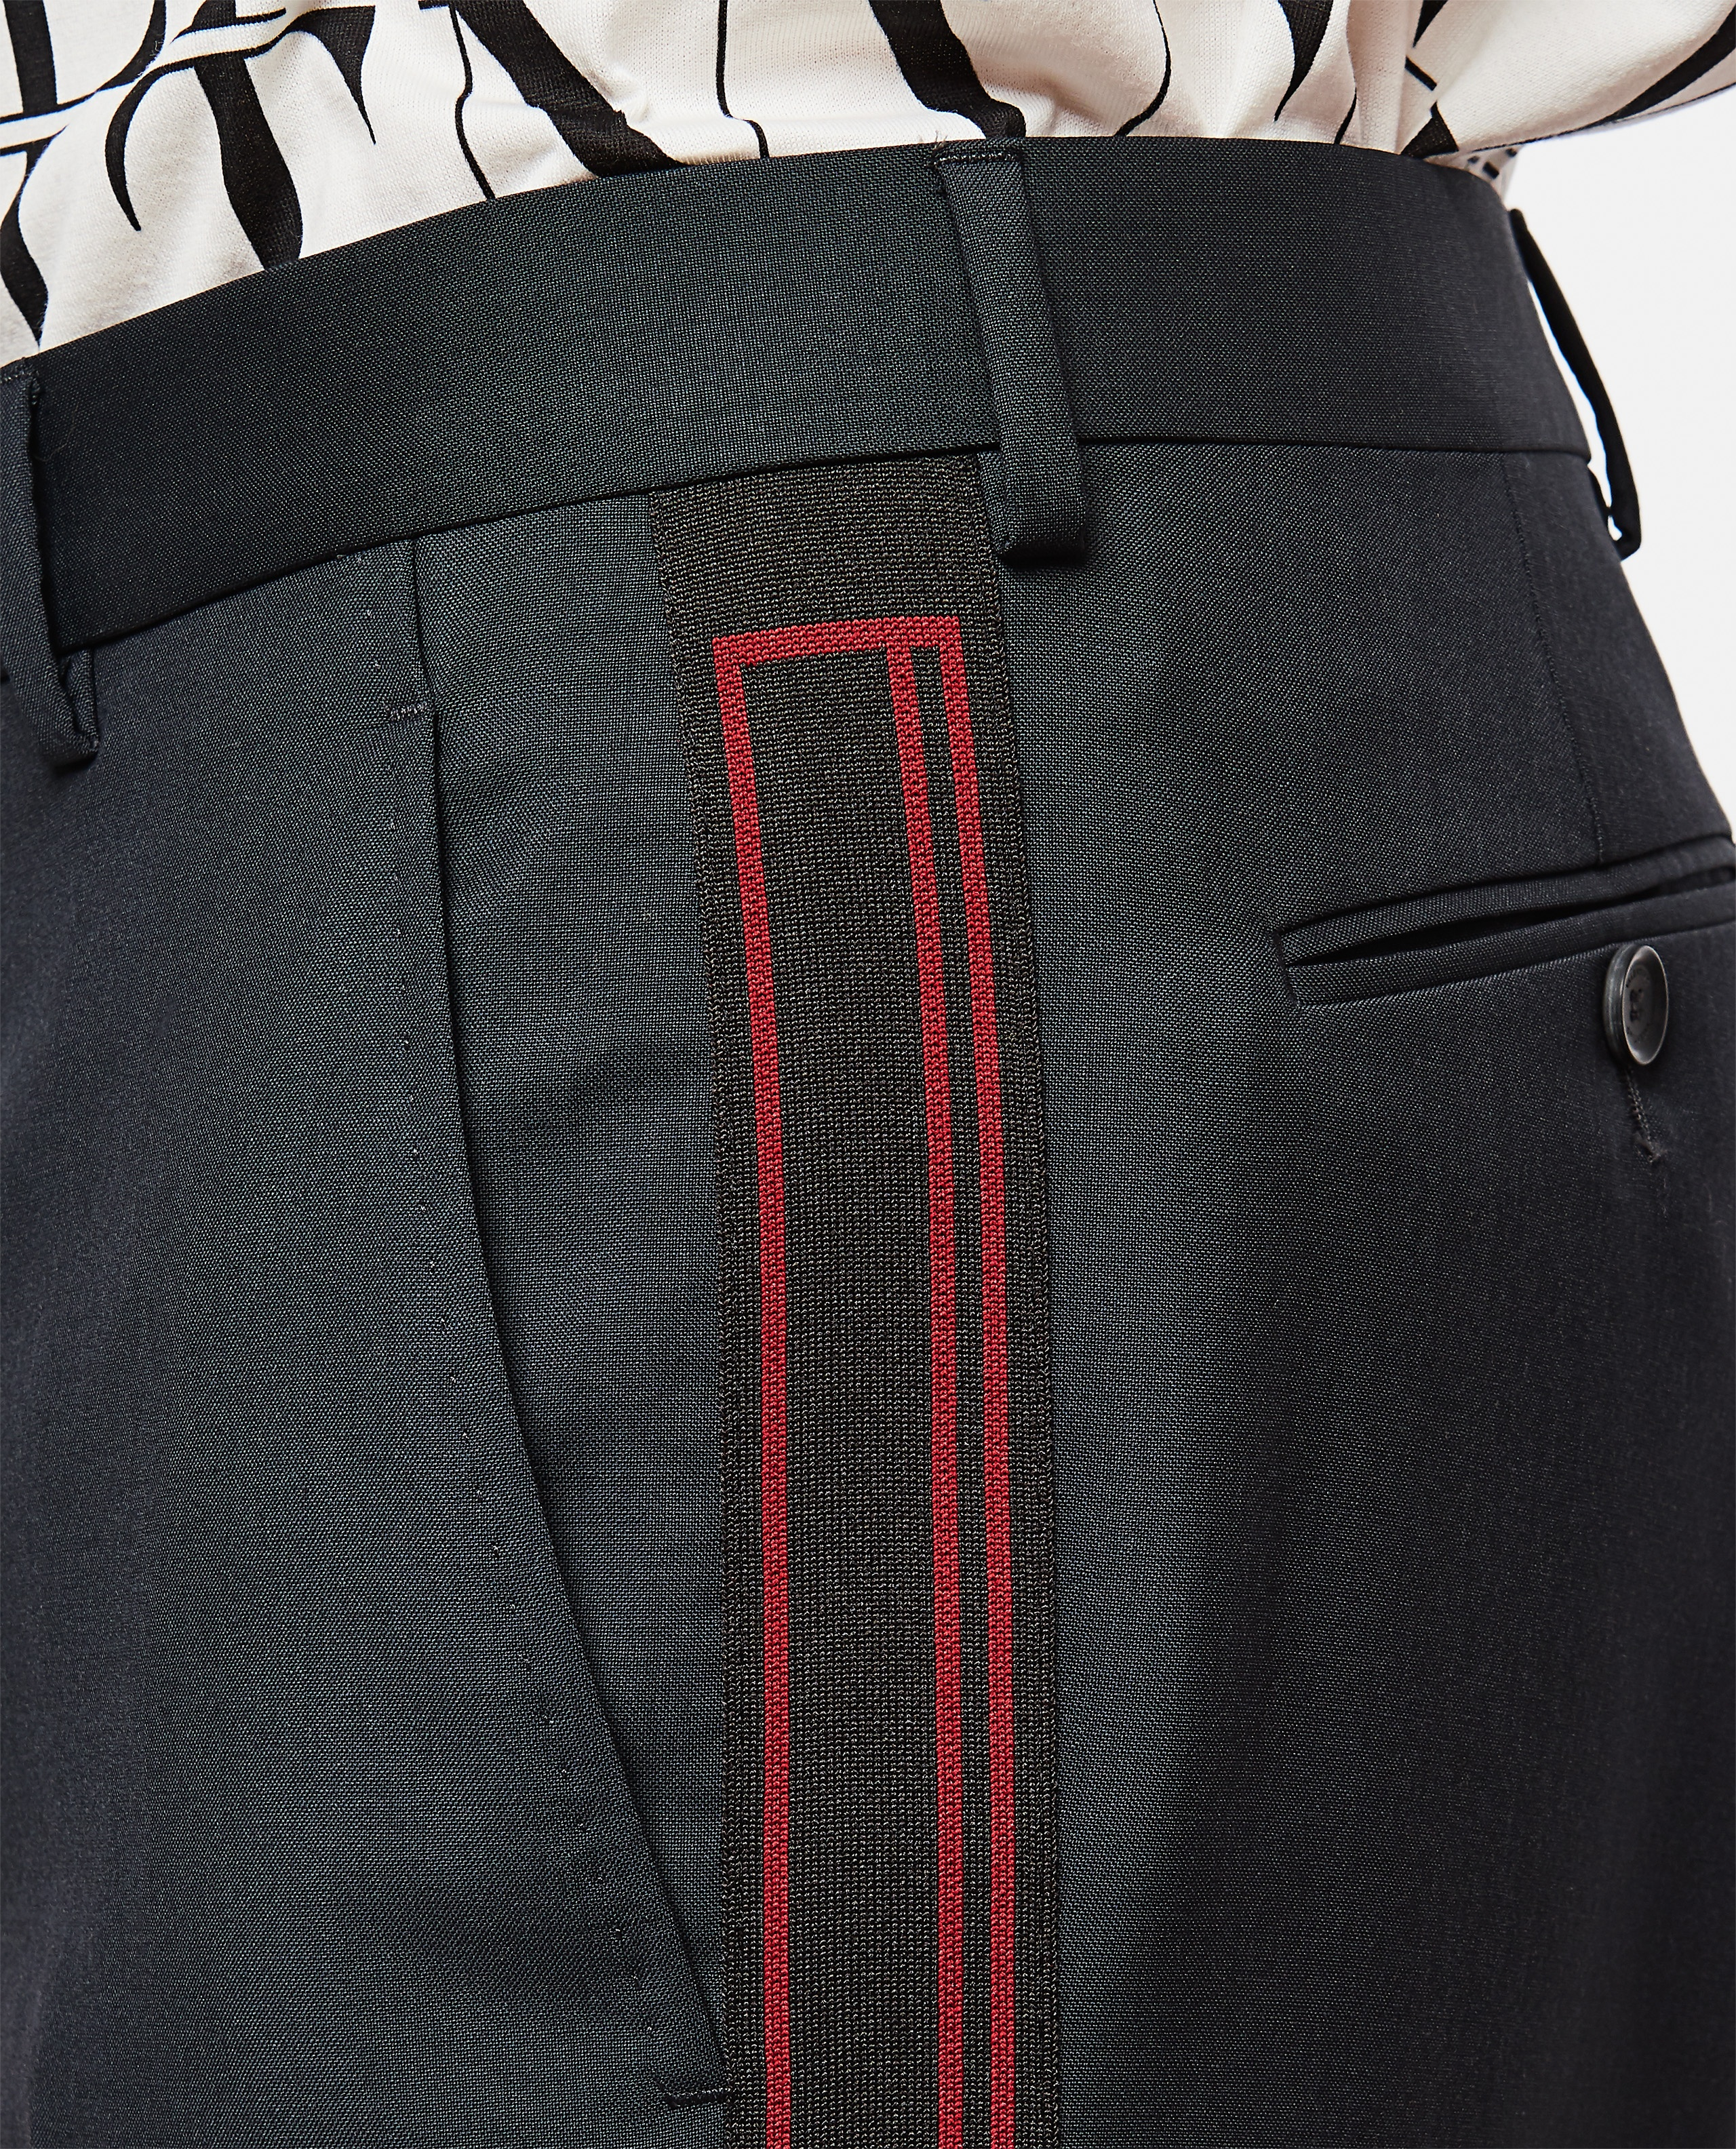 Slim fit trousers Men Valentino 000263490038956 4